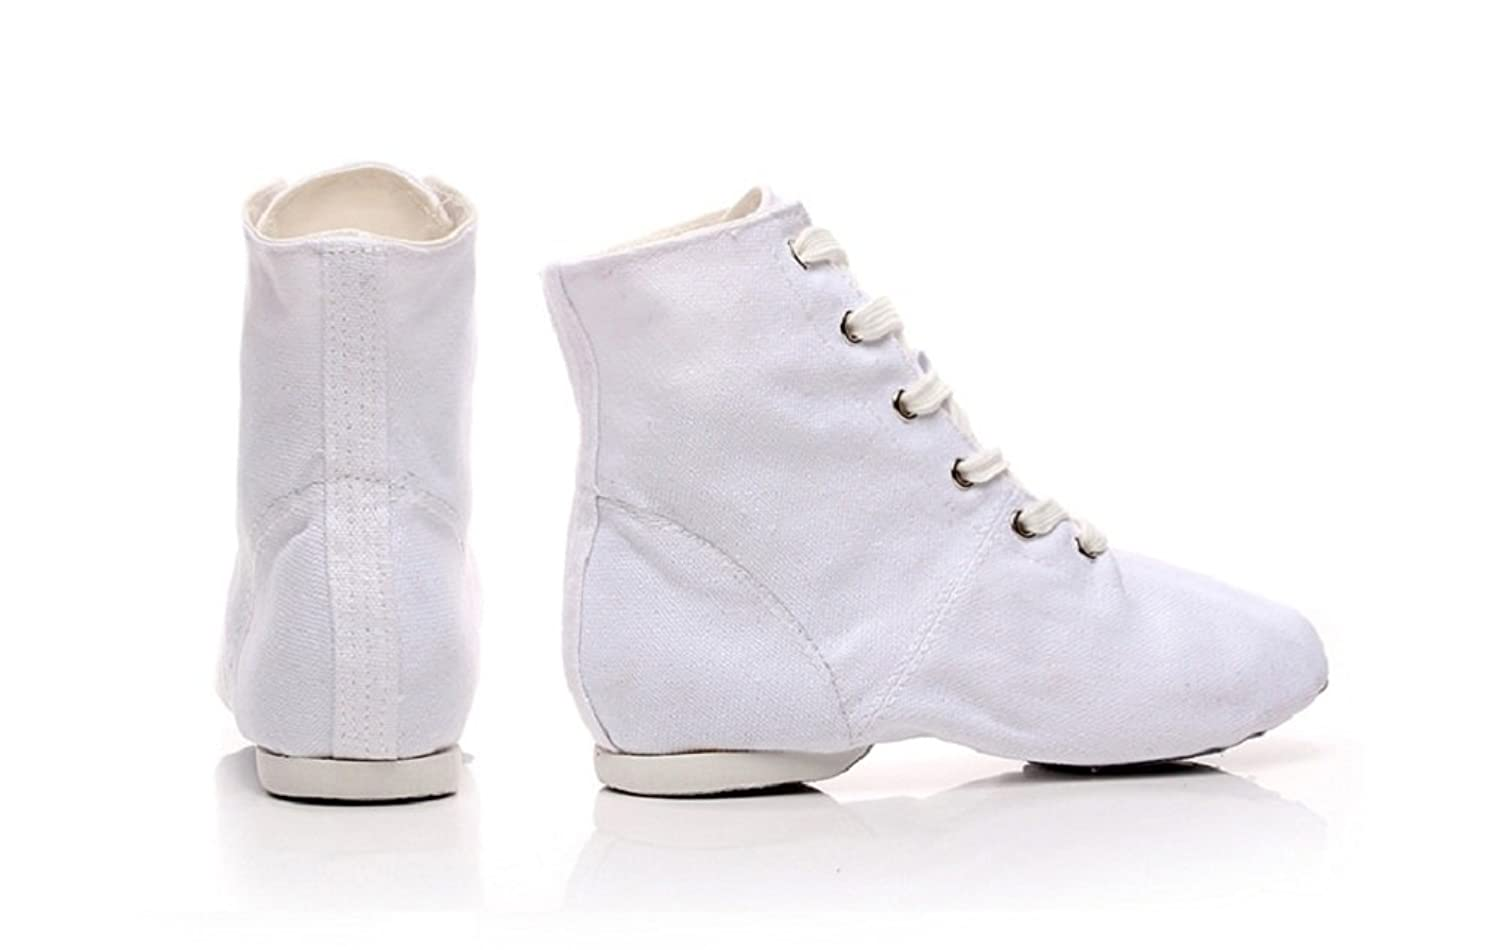 Vintage Boots- Winter Rain and Snow Boots NLeahershoe Lace-up Canvas Dance Shoes Flat Jazz Boots for Practice Suitable for Both Men and Women $14.99 AT vintagedancer.com